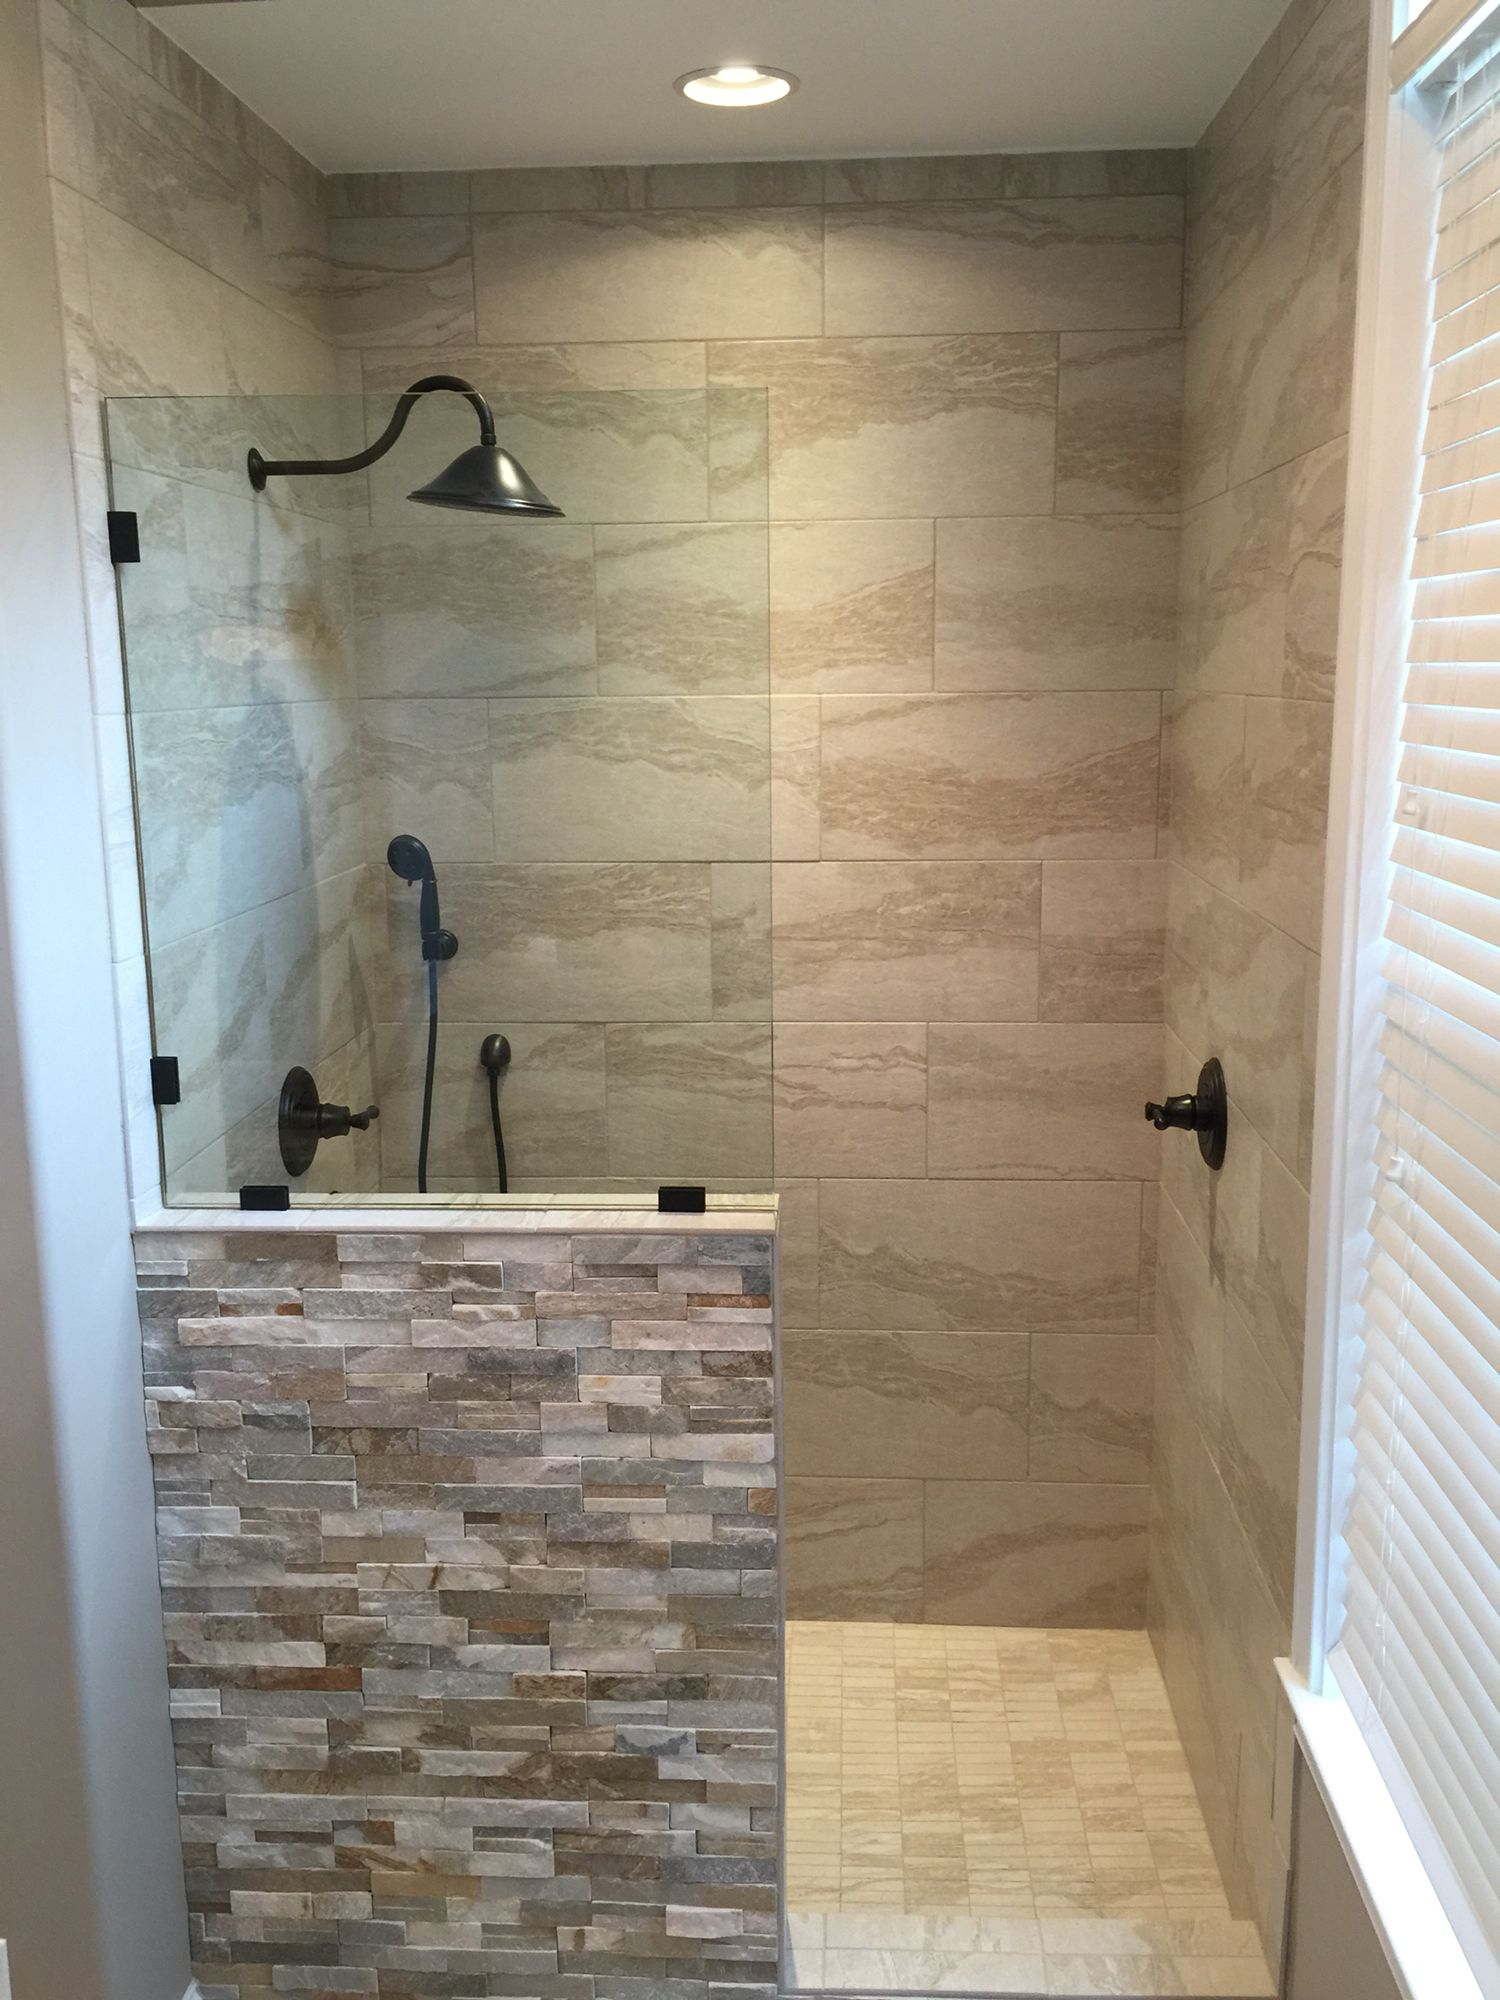 New shower replaced the old jacuzzi tub | My Bathroom | Pinterest ...